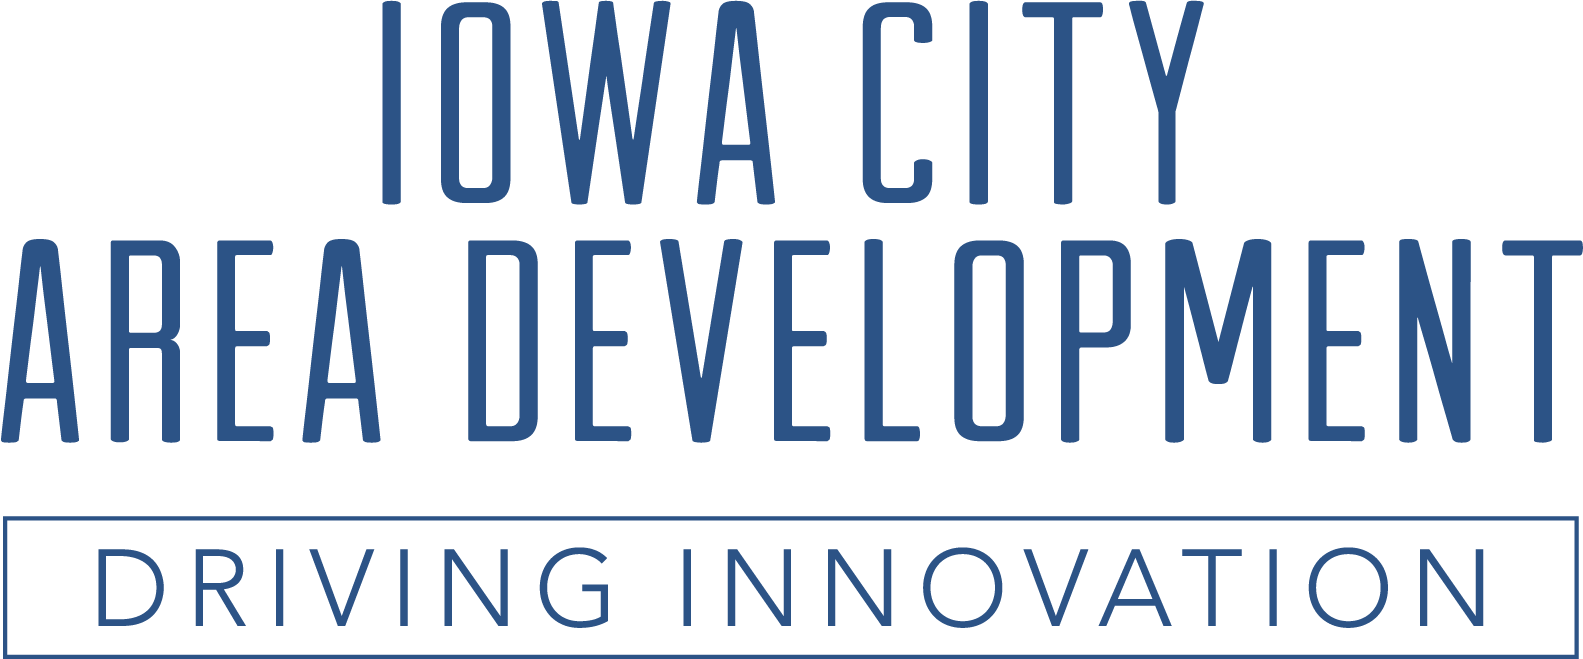 Iowa City Area Development Group (ICAD)Iowa City Area Development Group (ICAD) logo